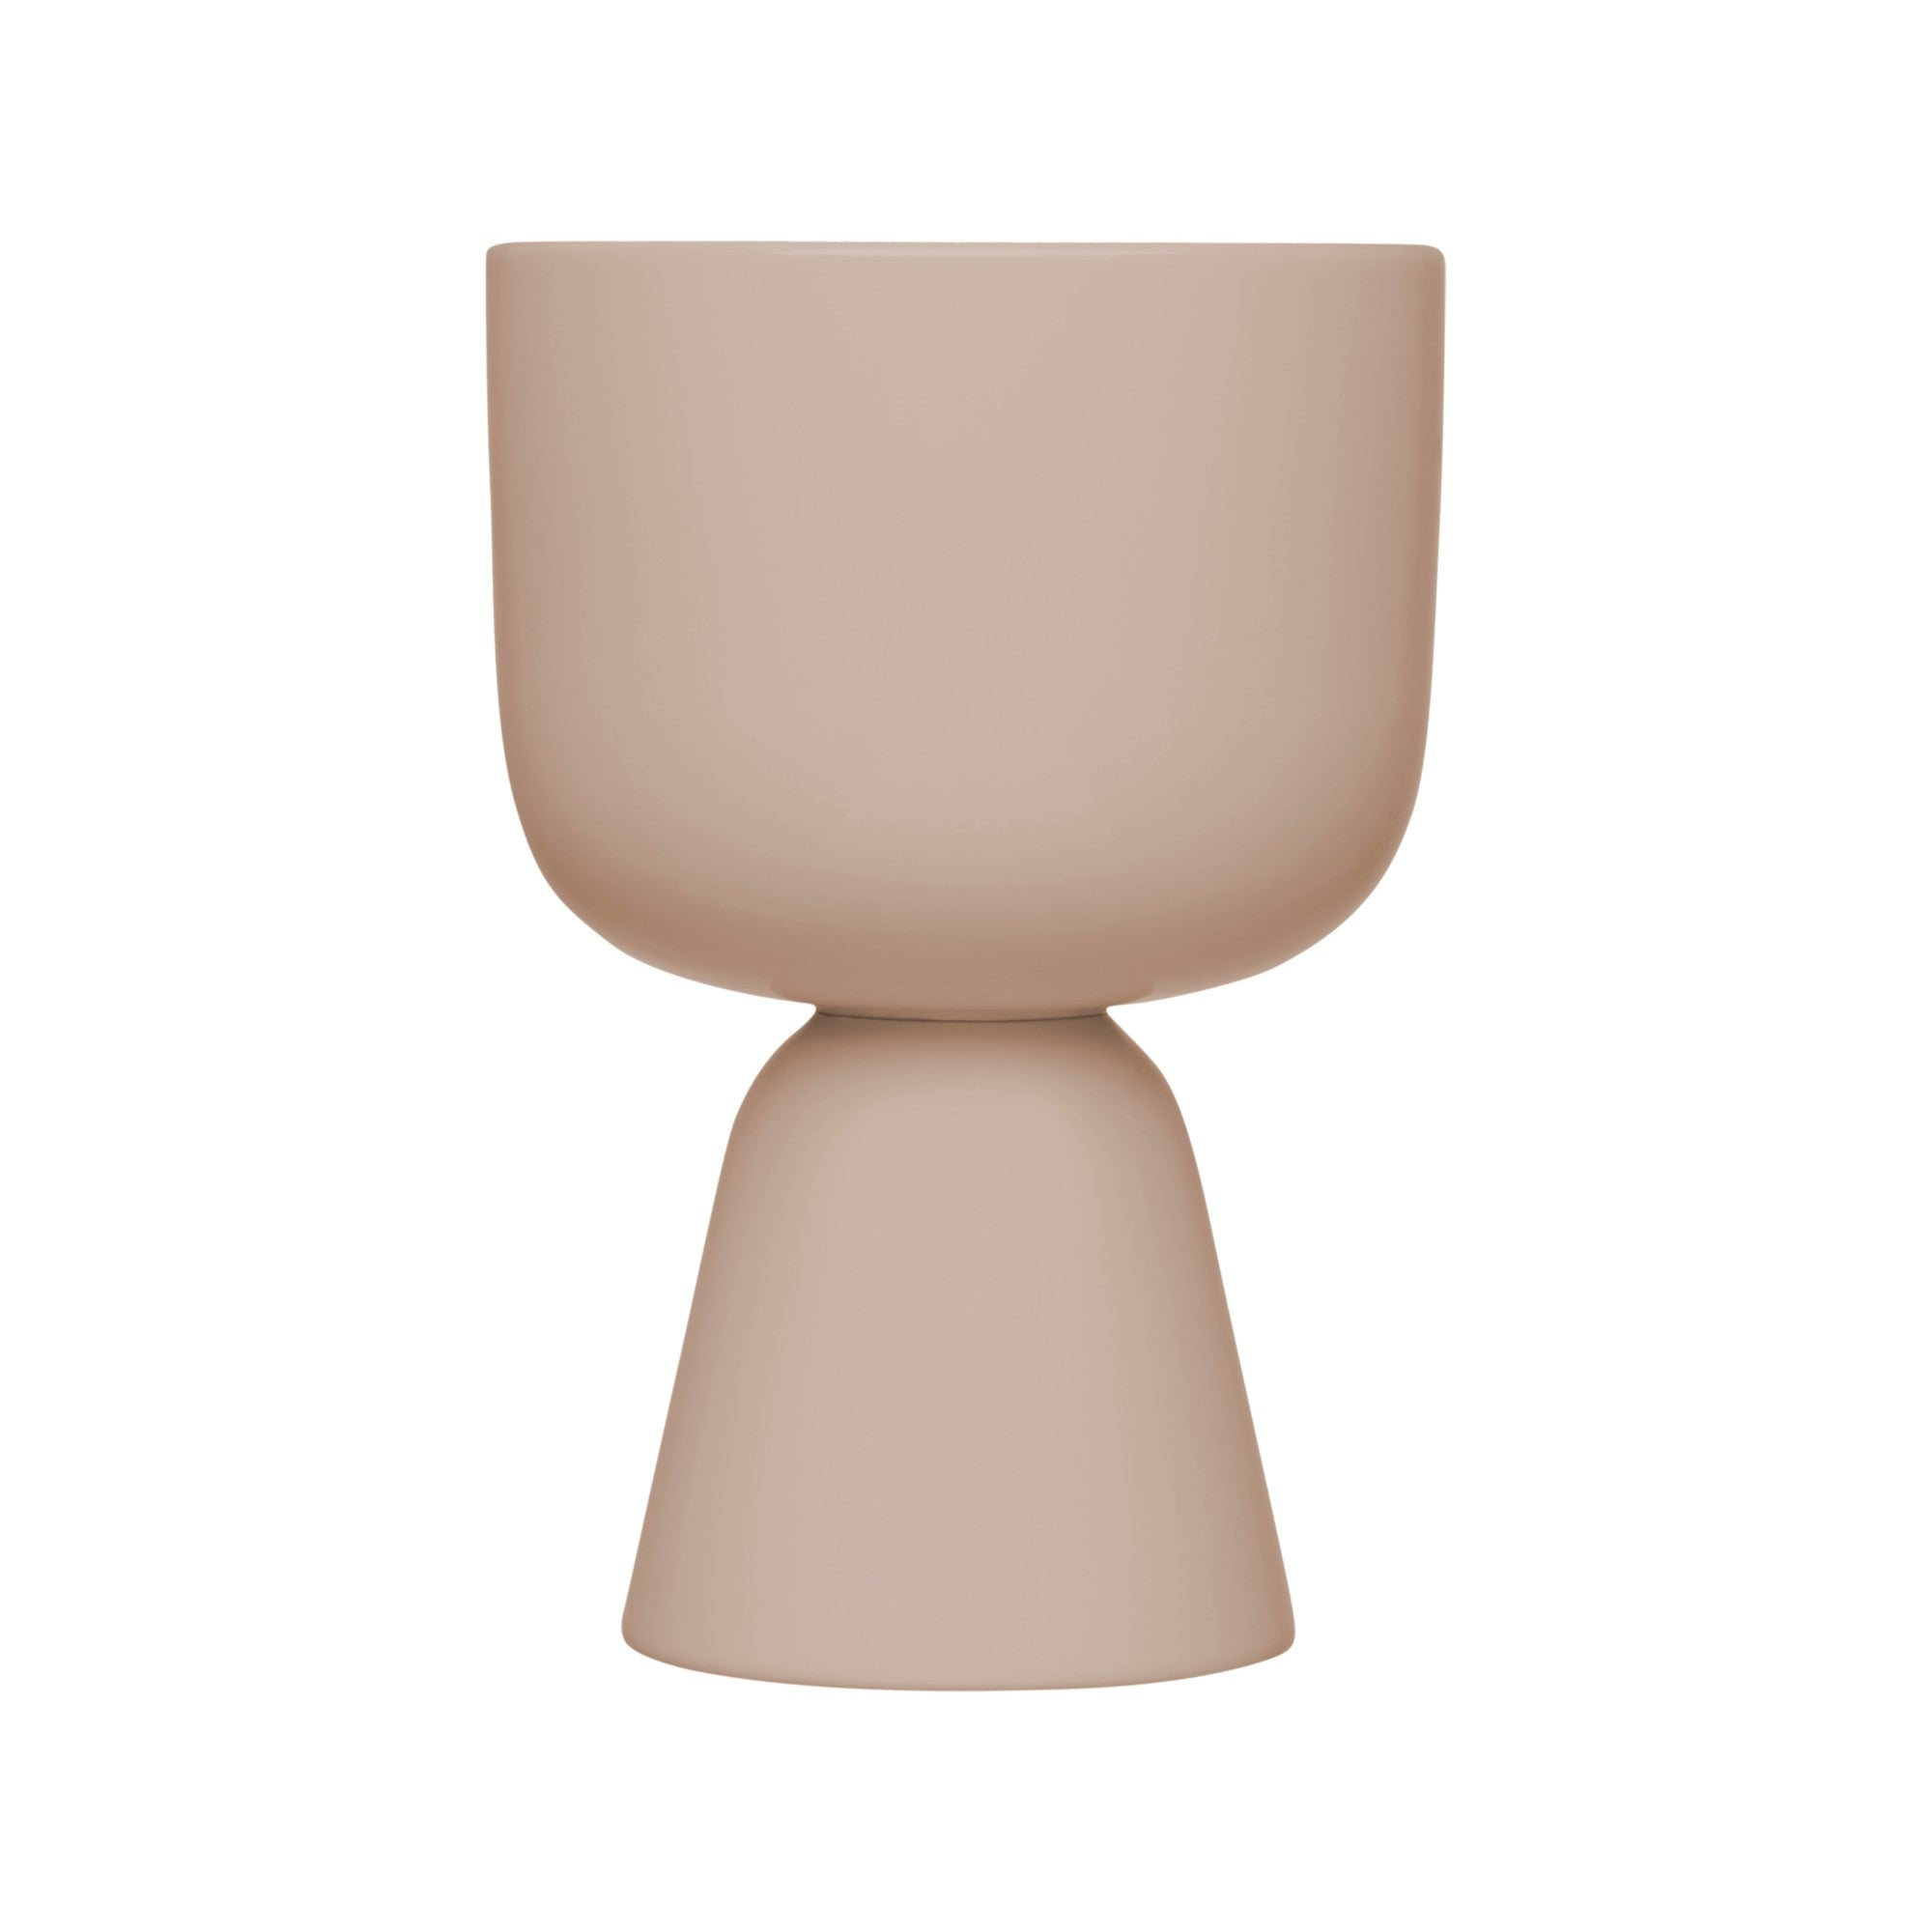 "Nappula plant pot 230 x 155 mm / 9 X 6"" Beige"